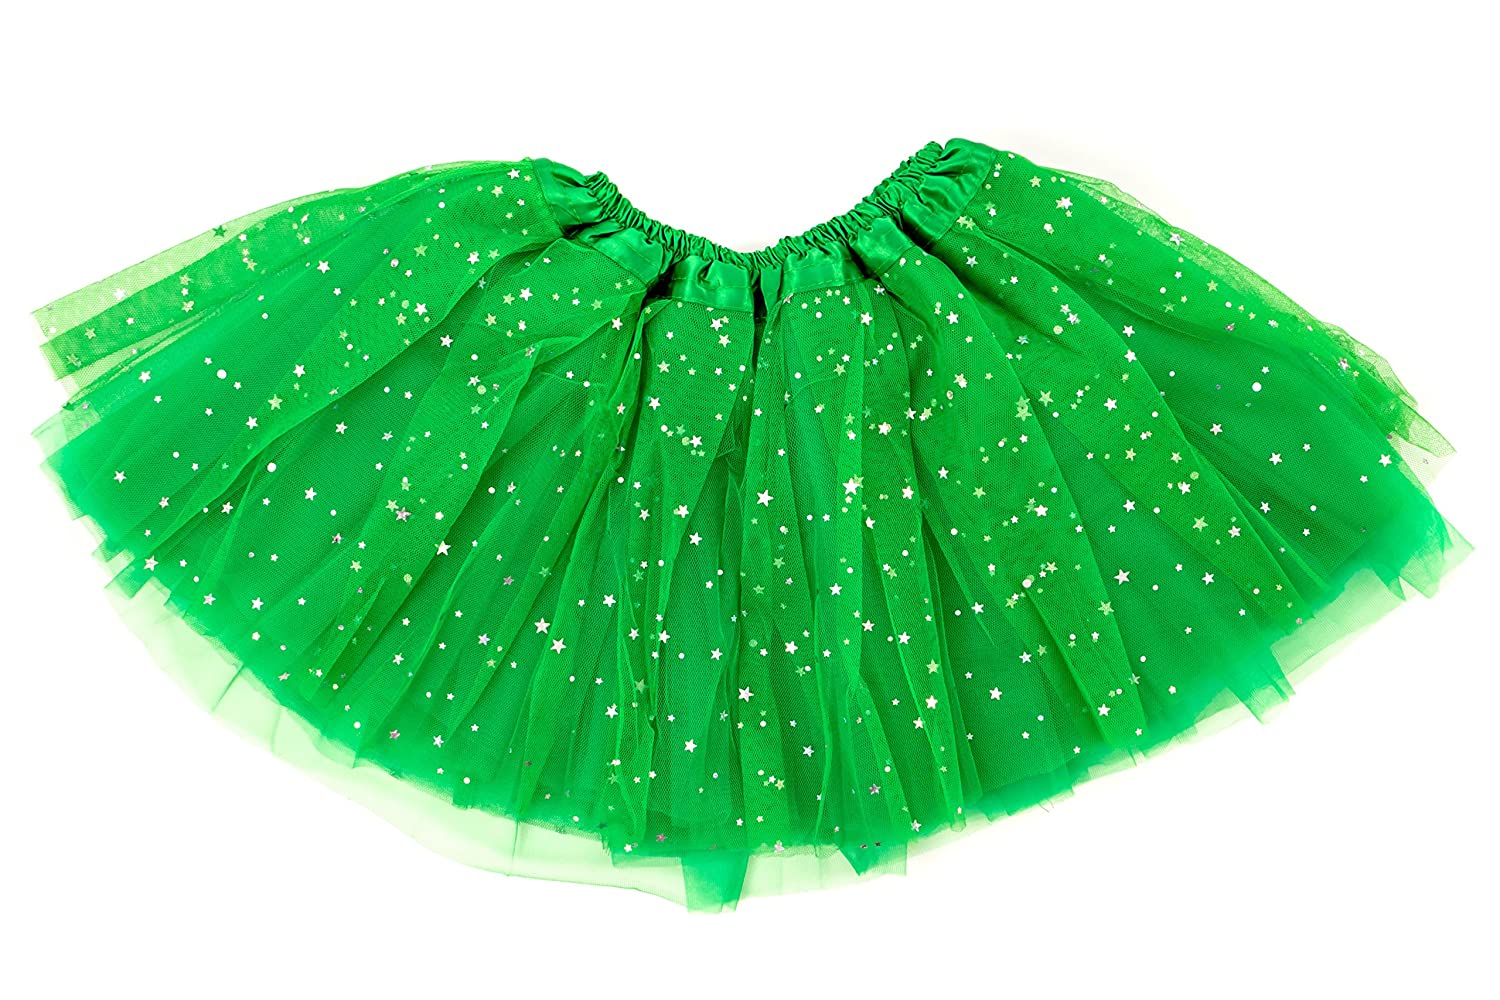 Dancina Sparkle Tutu Tulle Skirt Ages Baby 6-23 mo, 2-7 yr & Big Girls 8-13 yr